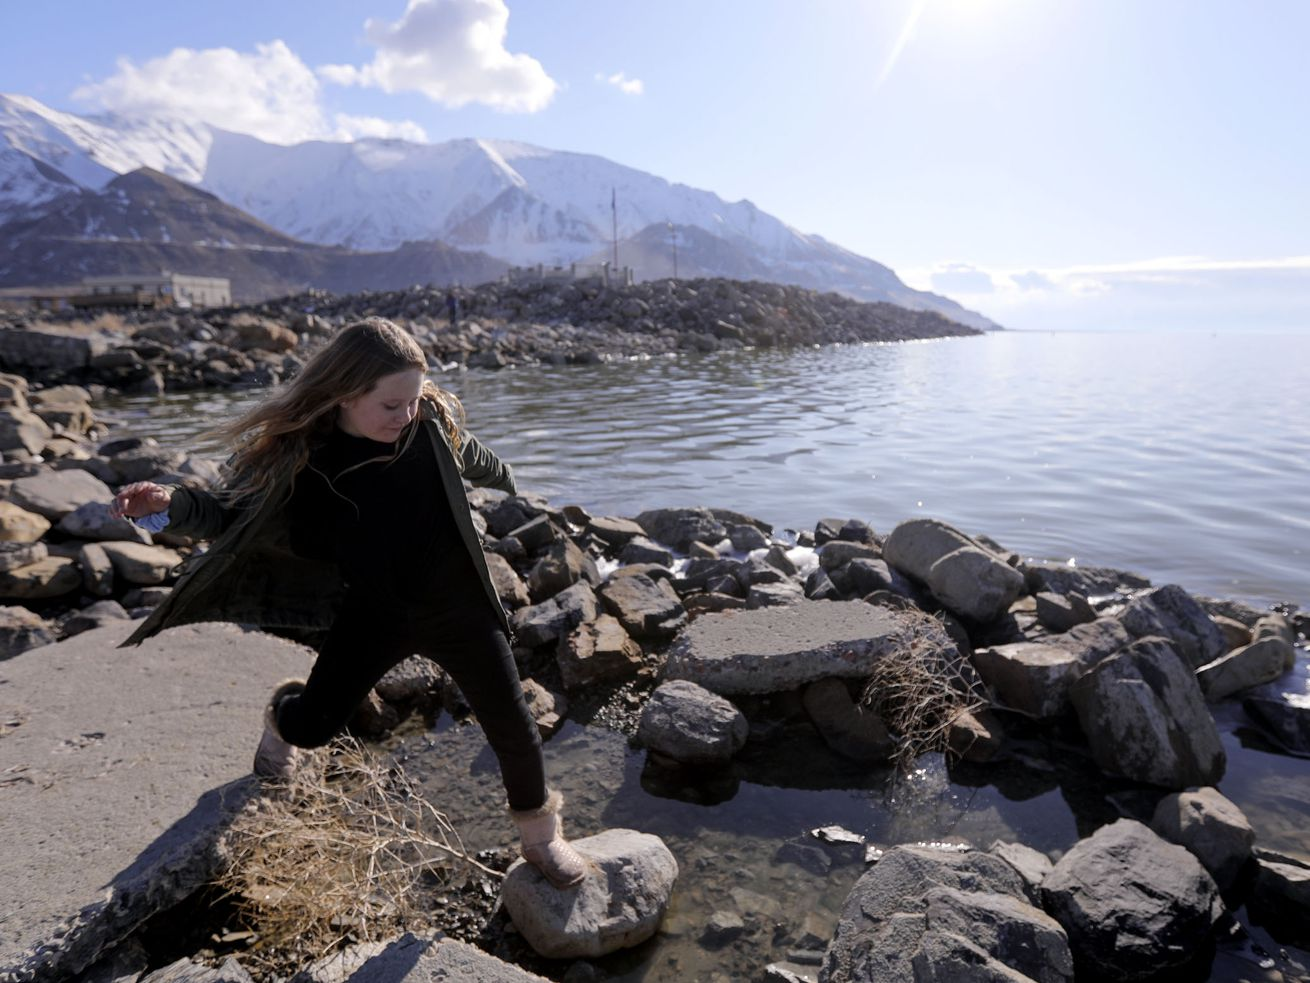 More $ sought for ailing Utah Lake, drying Great Salt Lake